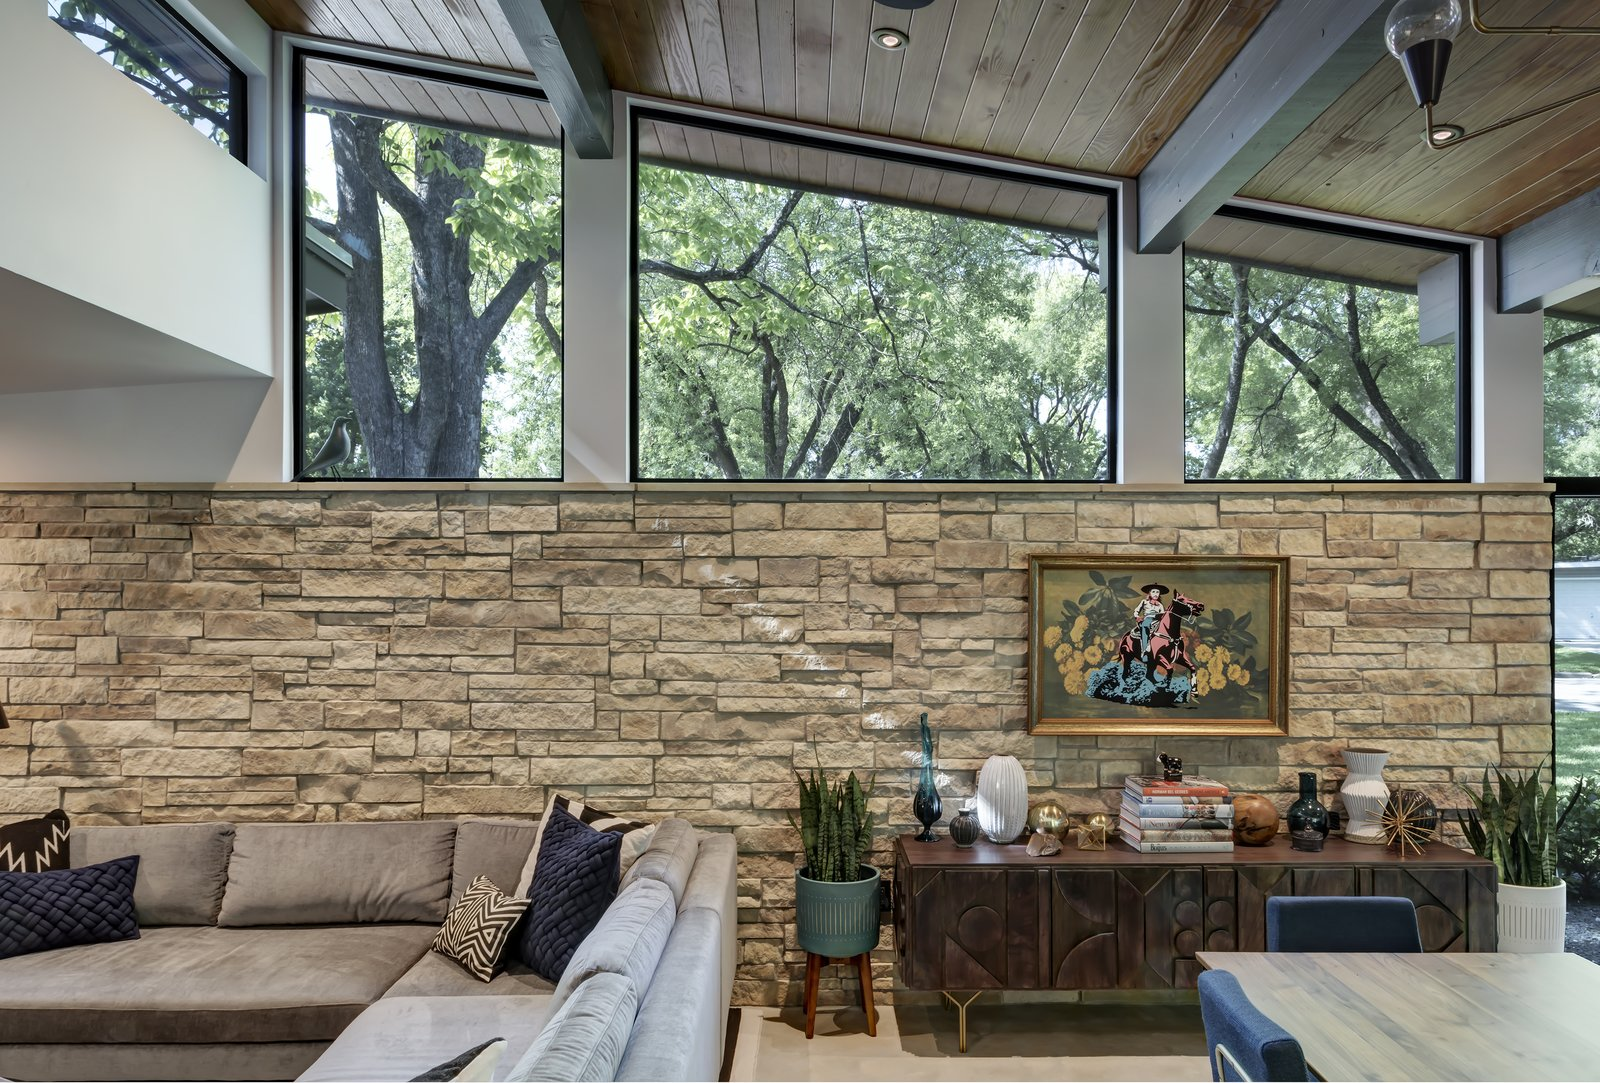 Living Room, Chair, Console Tables, Storage, Ceiling Lighting, Sofa, Concrete Floor, Recessed Lighting, and Pendant Lighting Re-Open House by Matt Fajkus Architecture | Photo by Charles Davis Smith  Re-Open House by Matt Fajkus Architecture